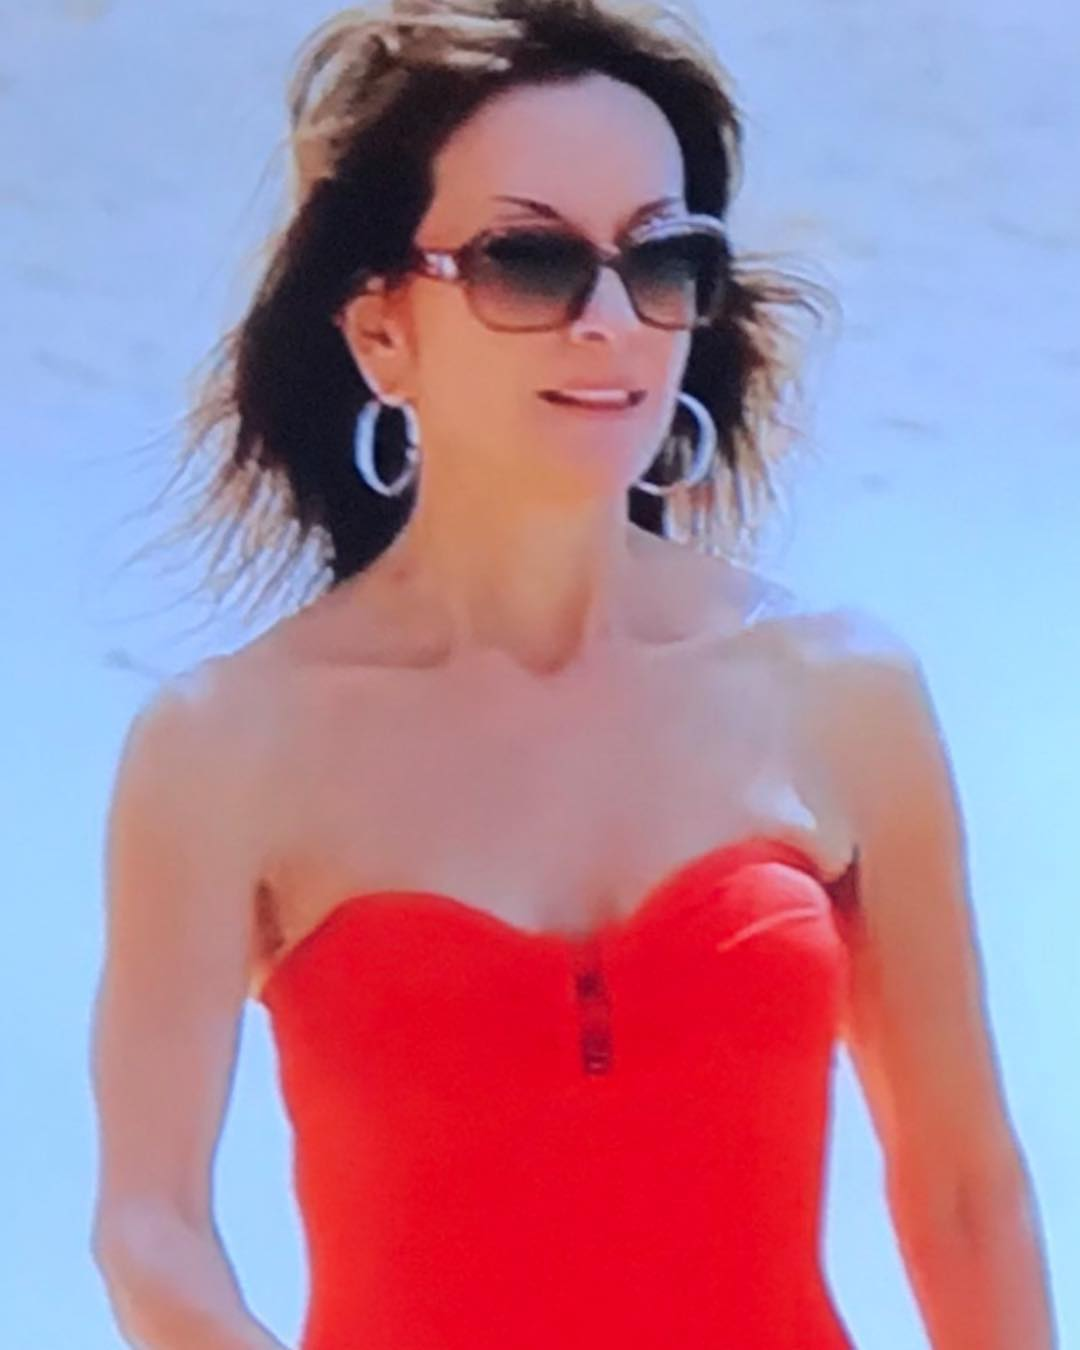 PHOTOS: All My Children Alum Susan Lucci Spends Vacation